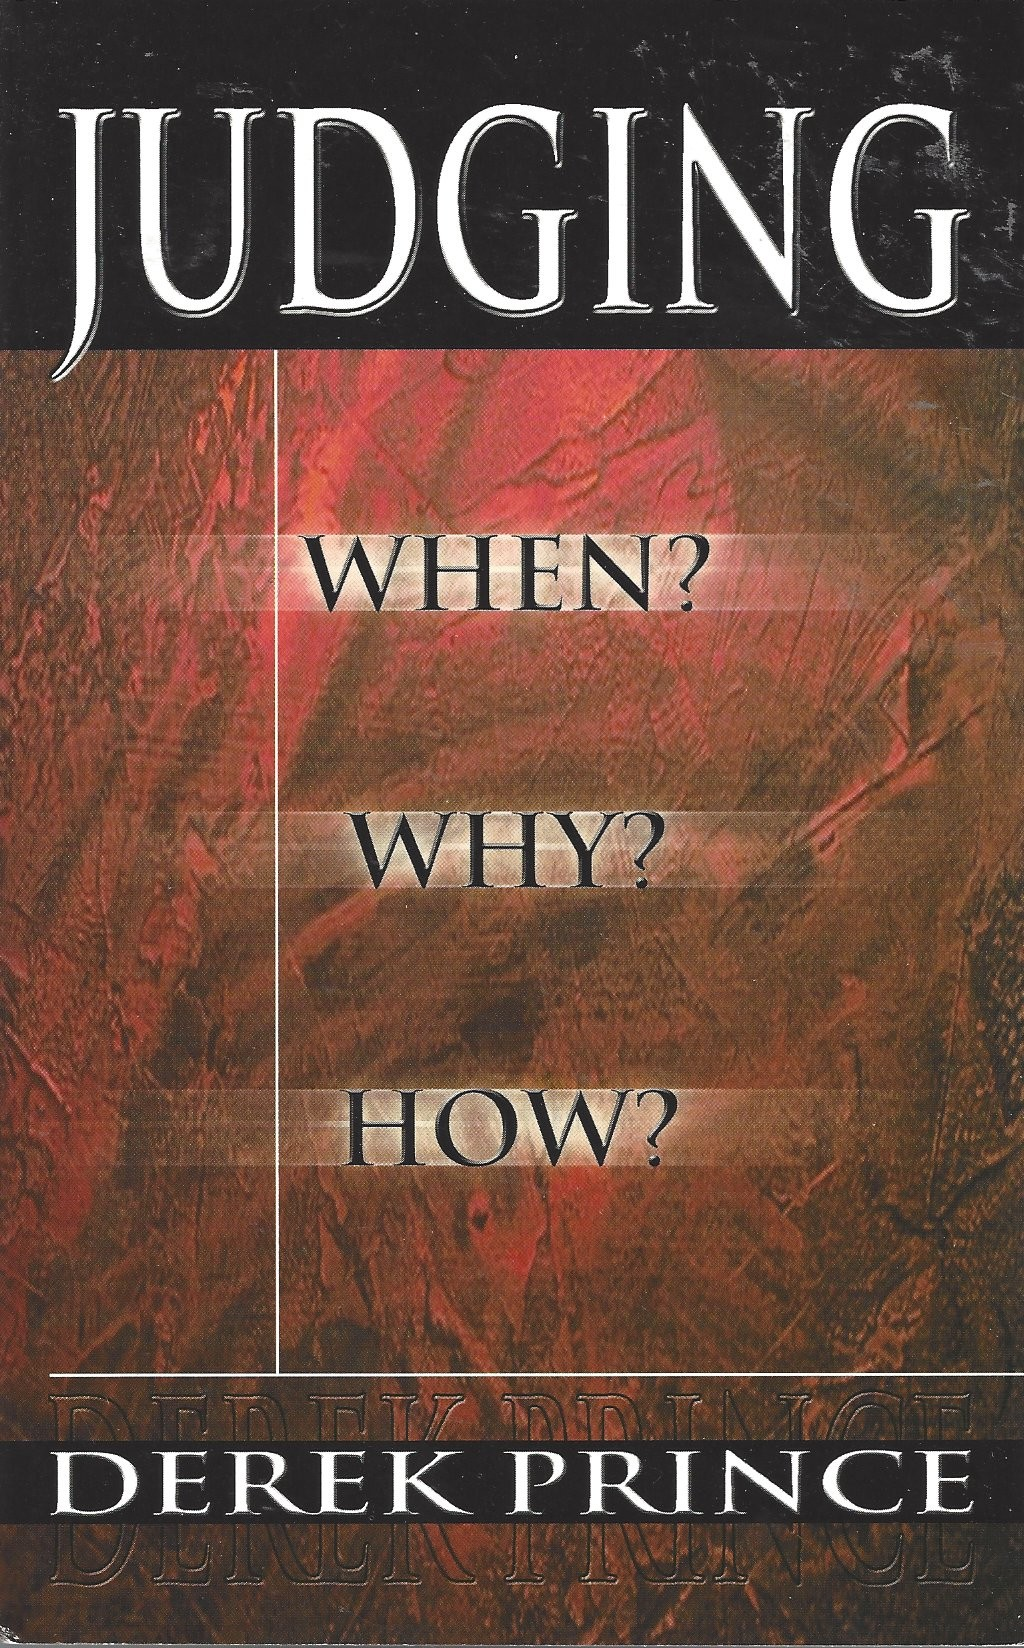 Judging  When?  Why?  How?  (2001)  Front